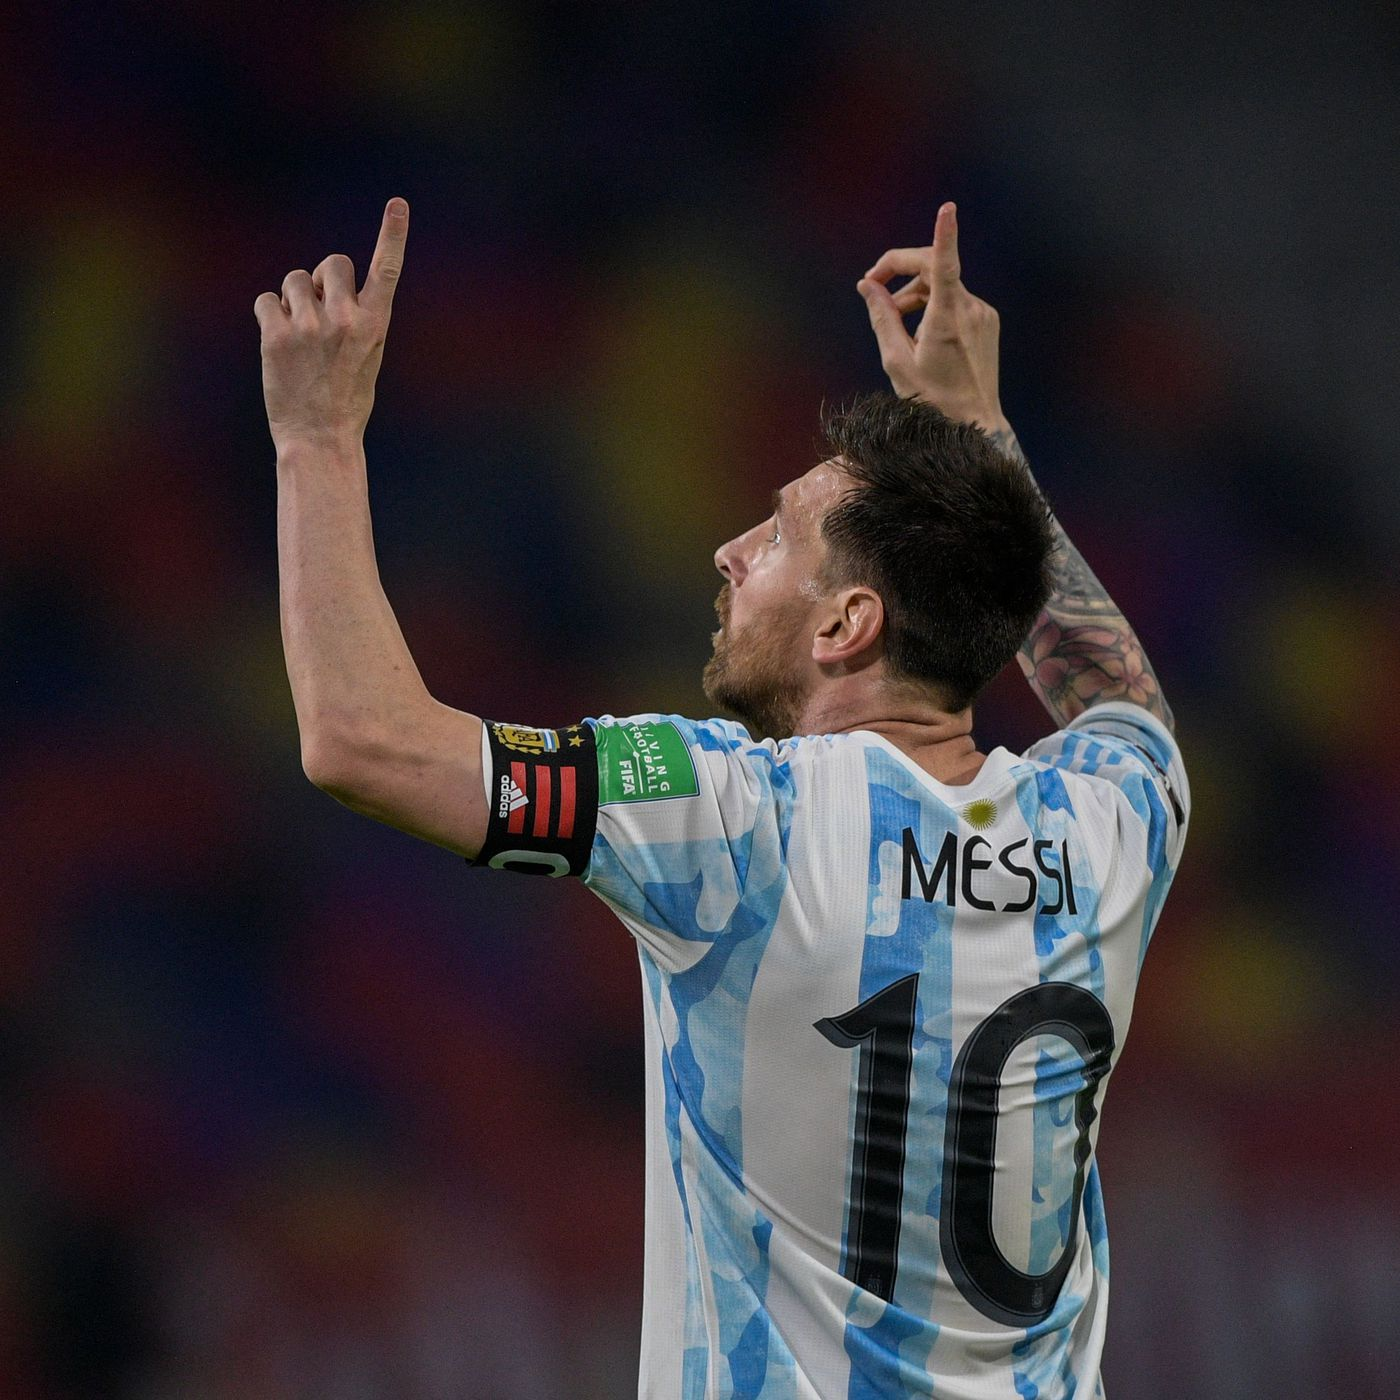 Today Lionel Messi Makes 34 Years, A Journey of 17 years in Football - Newslibre